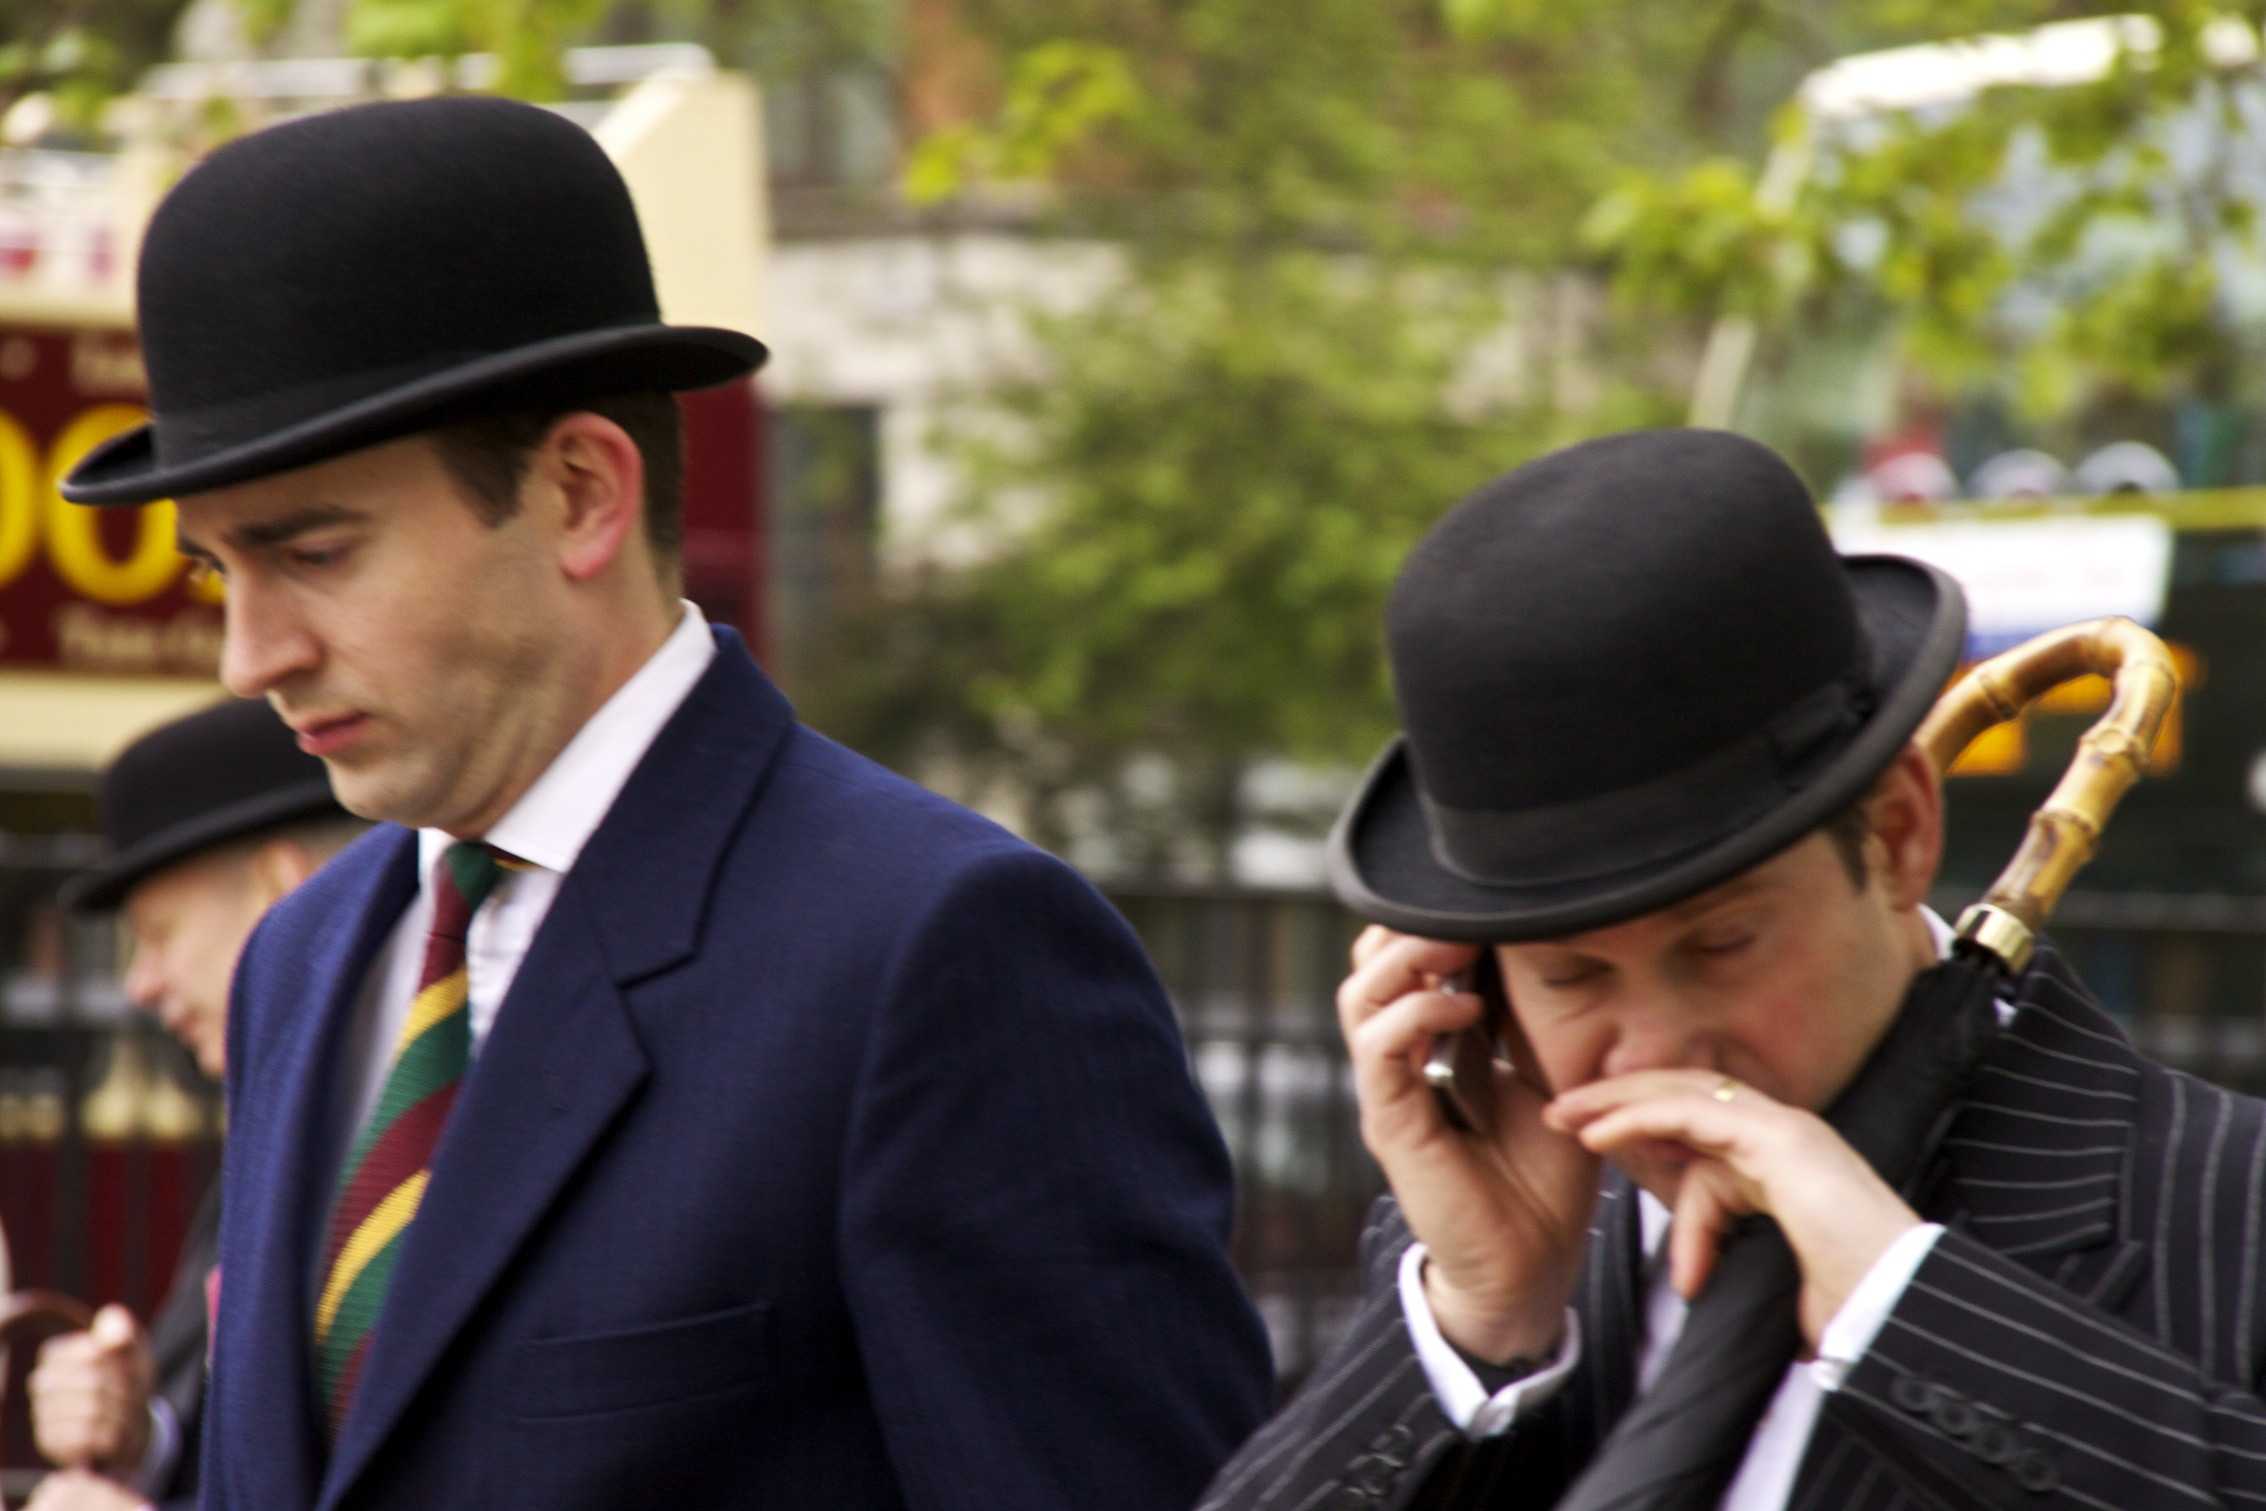 Two men in bowler hats, one sneezes while on his mobile phone